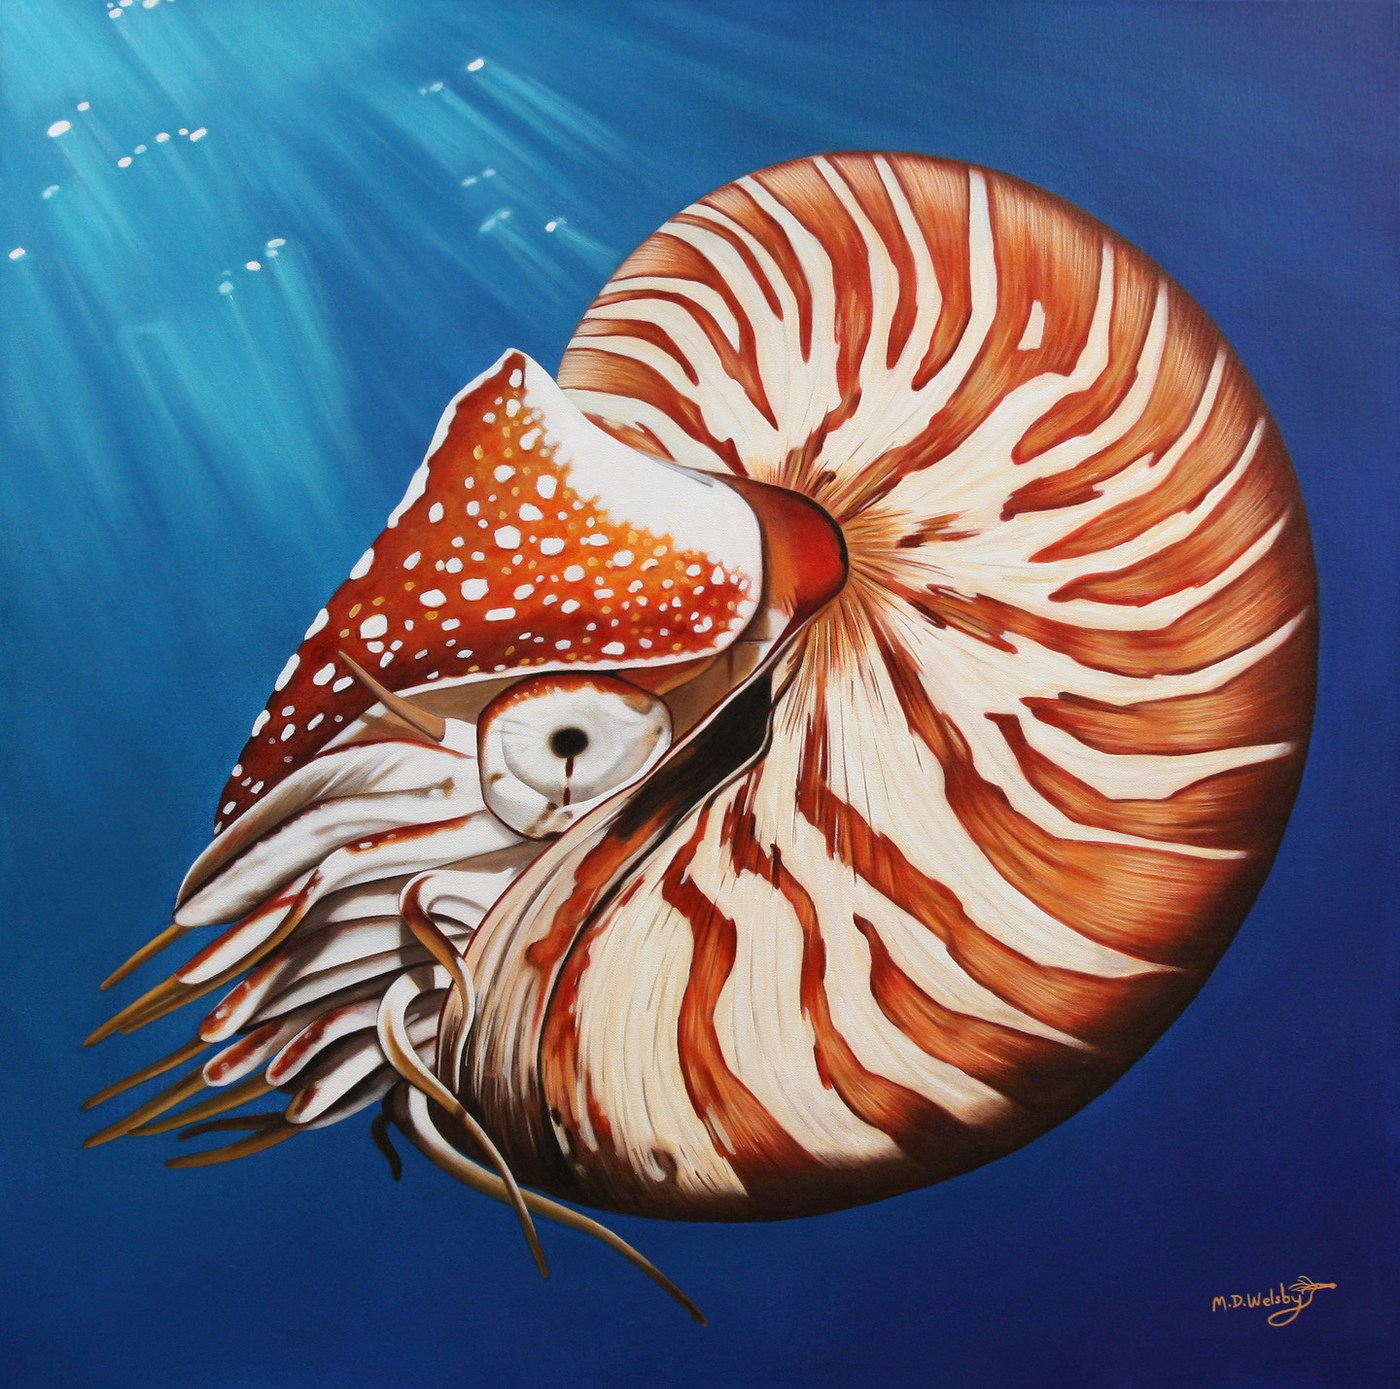 Nautilus | ART LOGIC